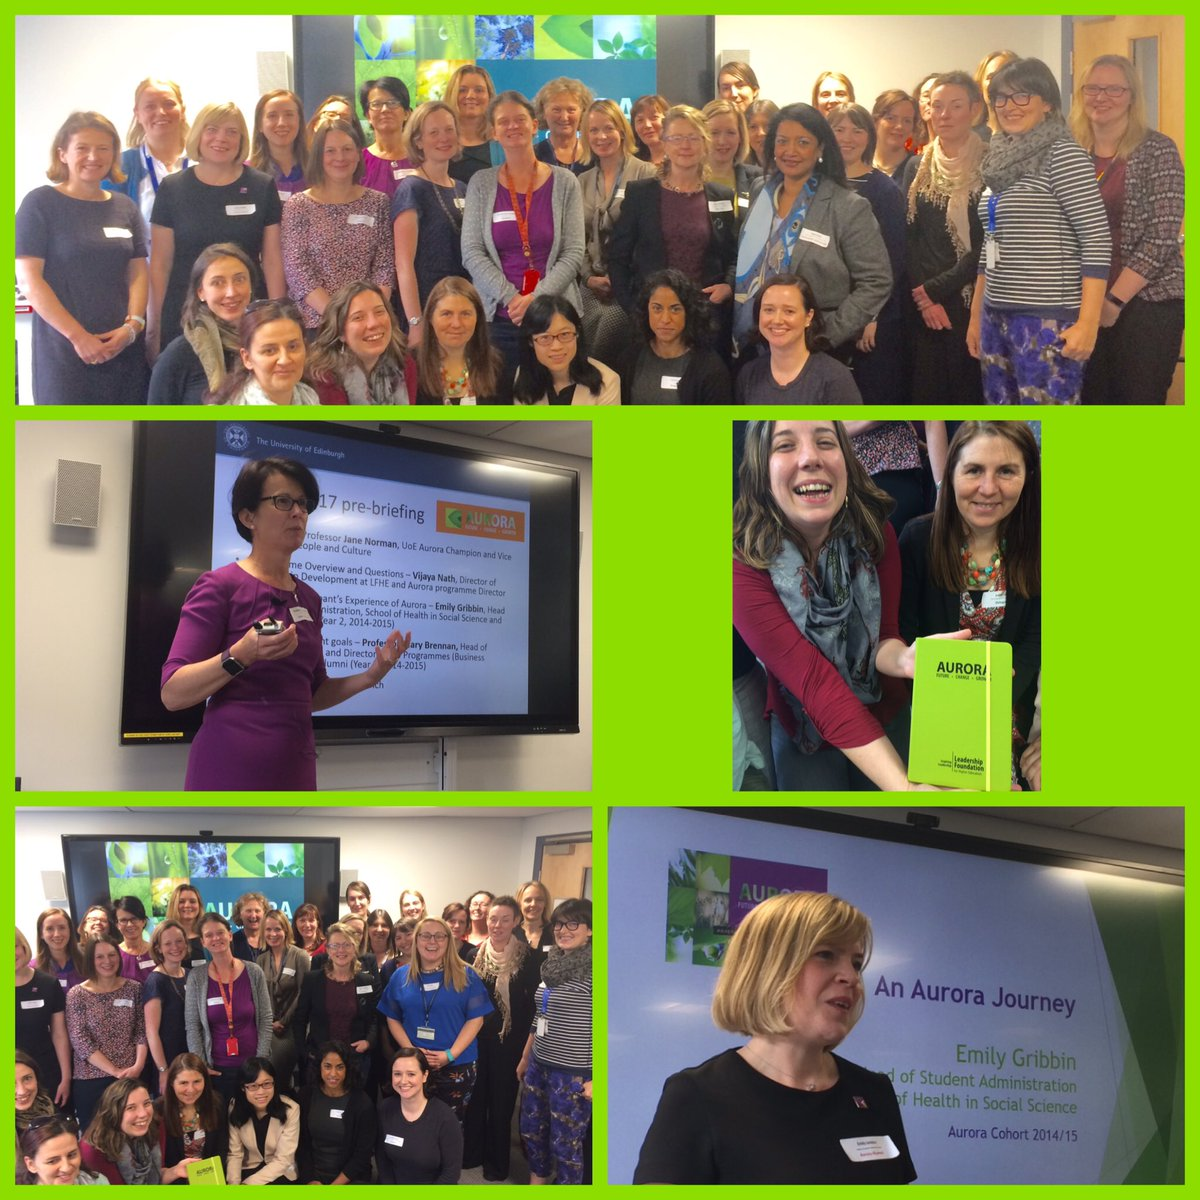 Absolute privilege to be here @EdinburghUni #LFAurora launch - officially largest cohort &amp; have previewed new &#39;secret&#39; addition 1st #LFLead <br>http://pic.twitter.com/2Rxh8mjATB